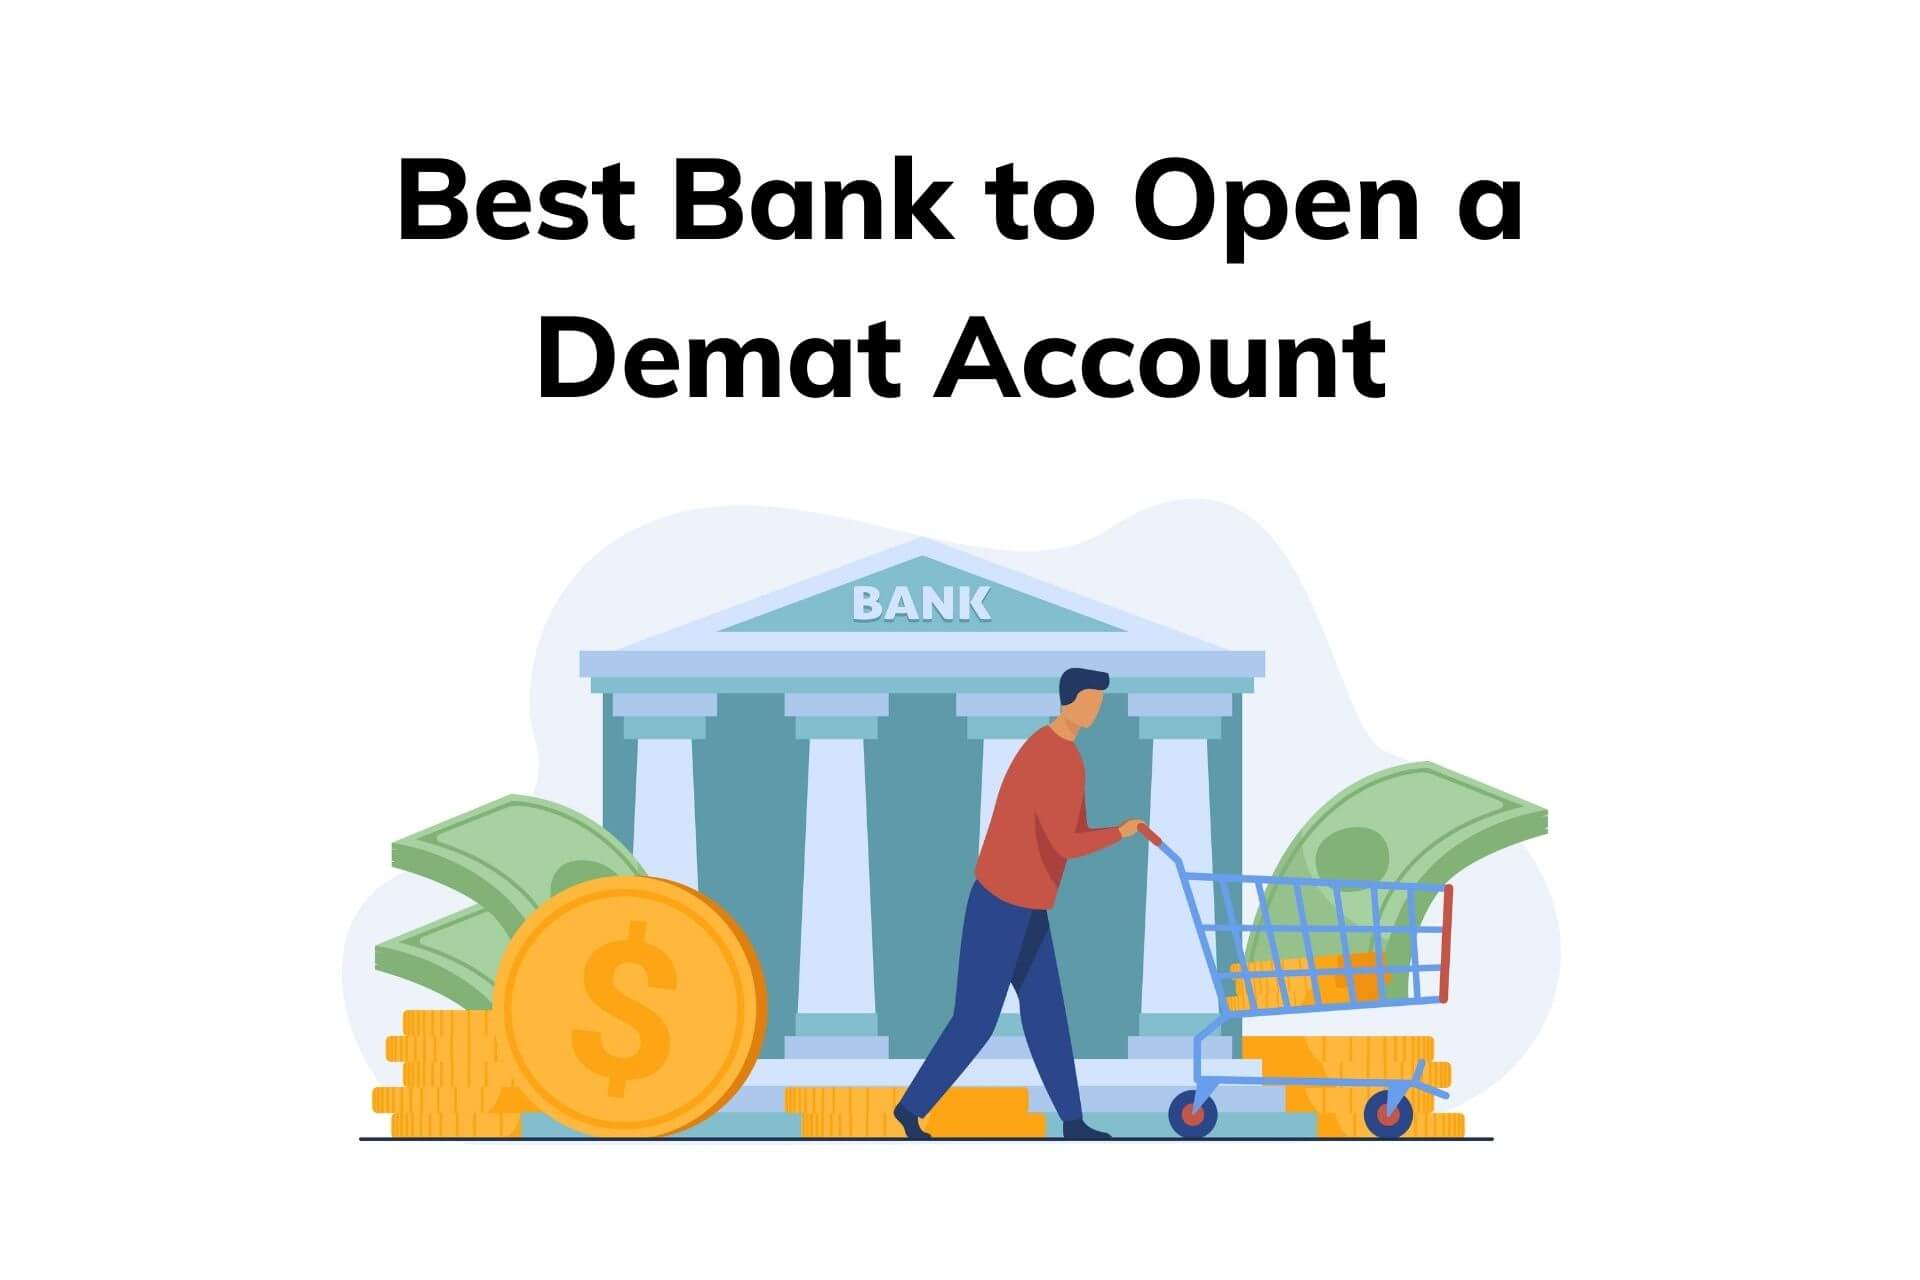 Which Bank is Best for Demat Account?